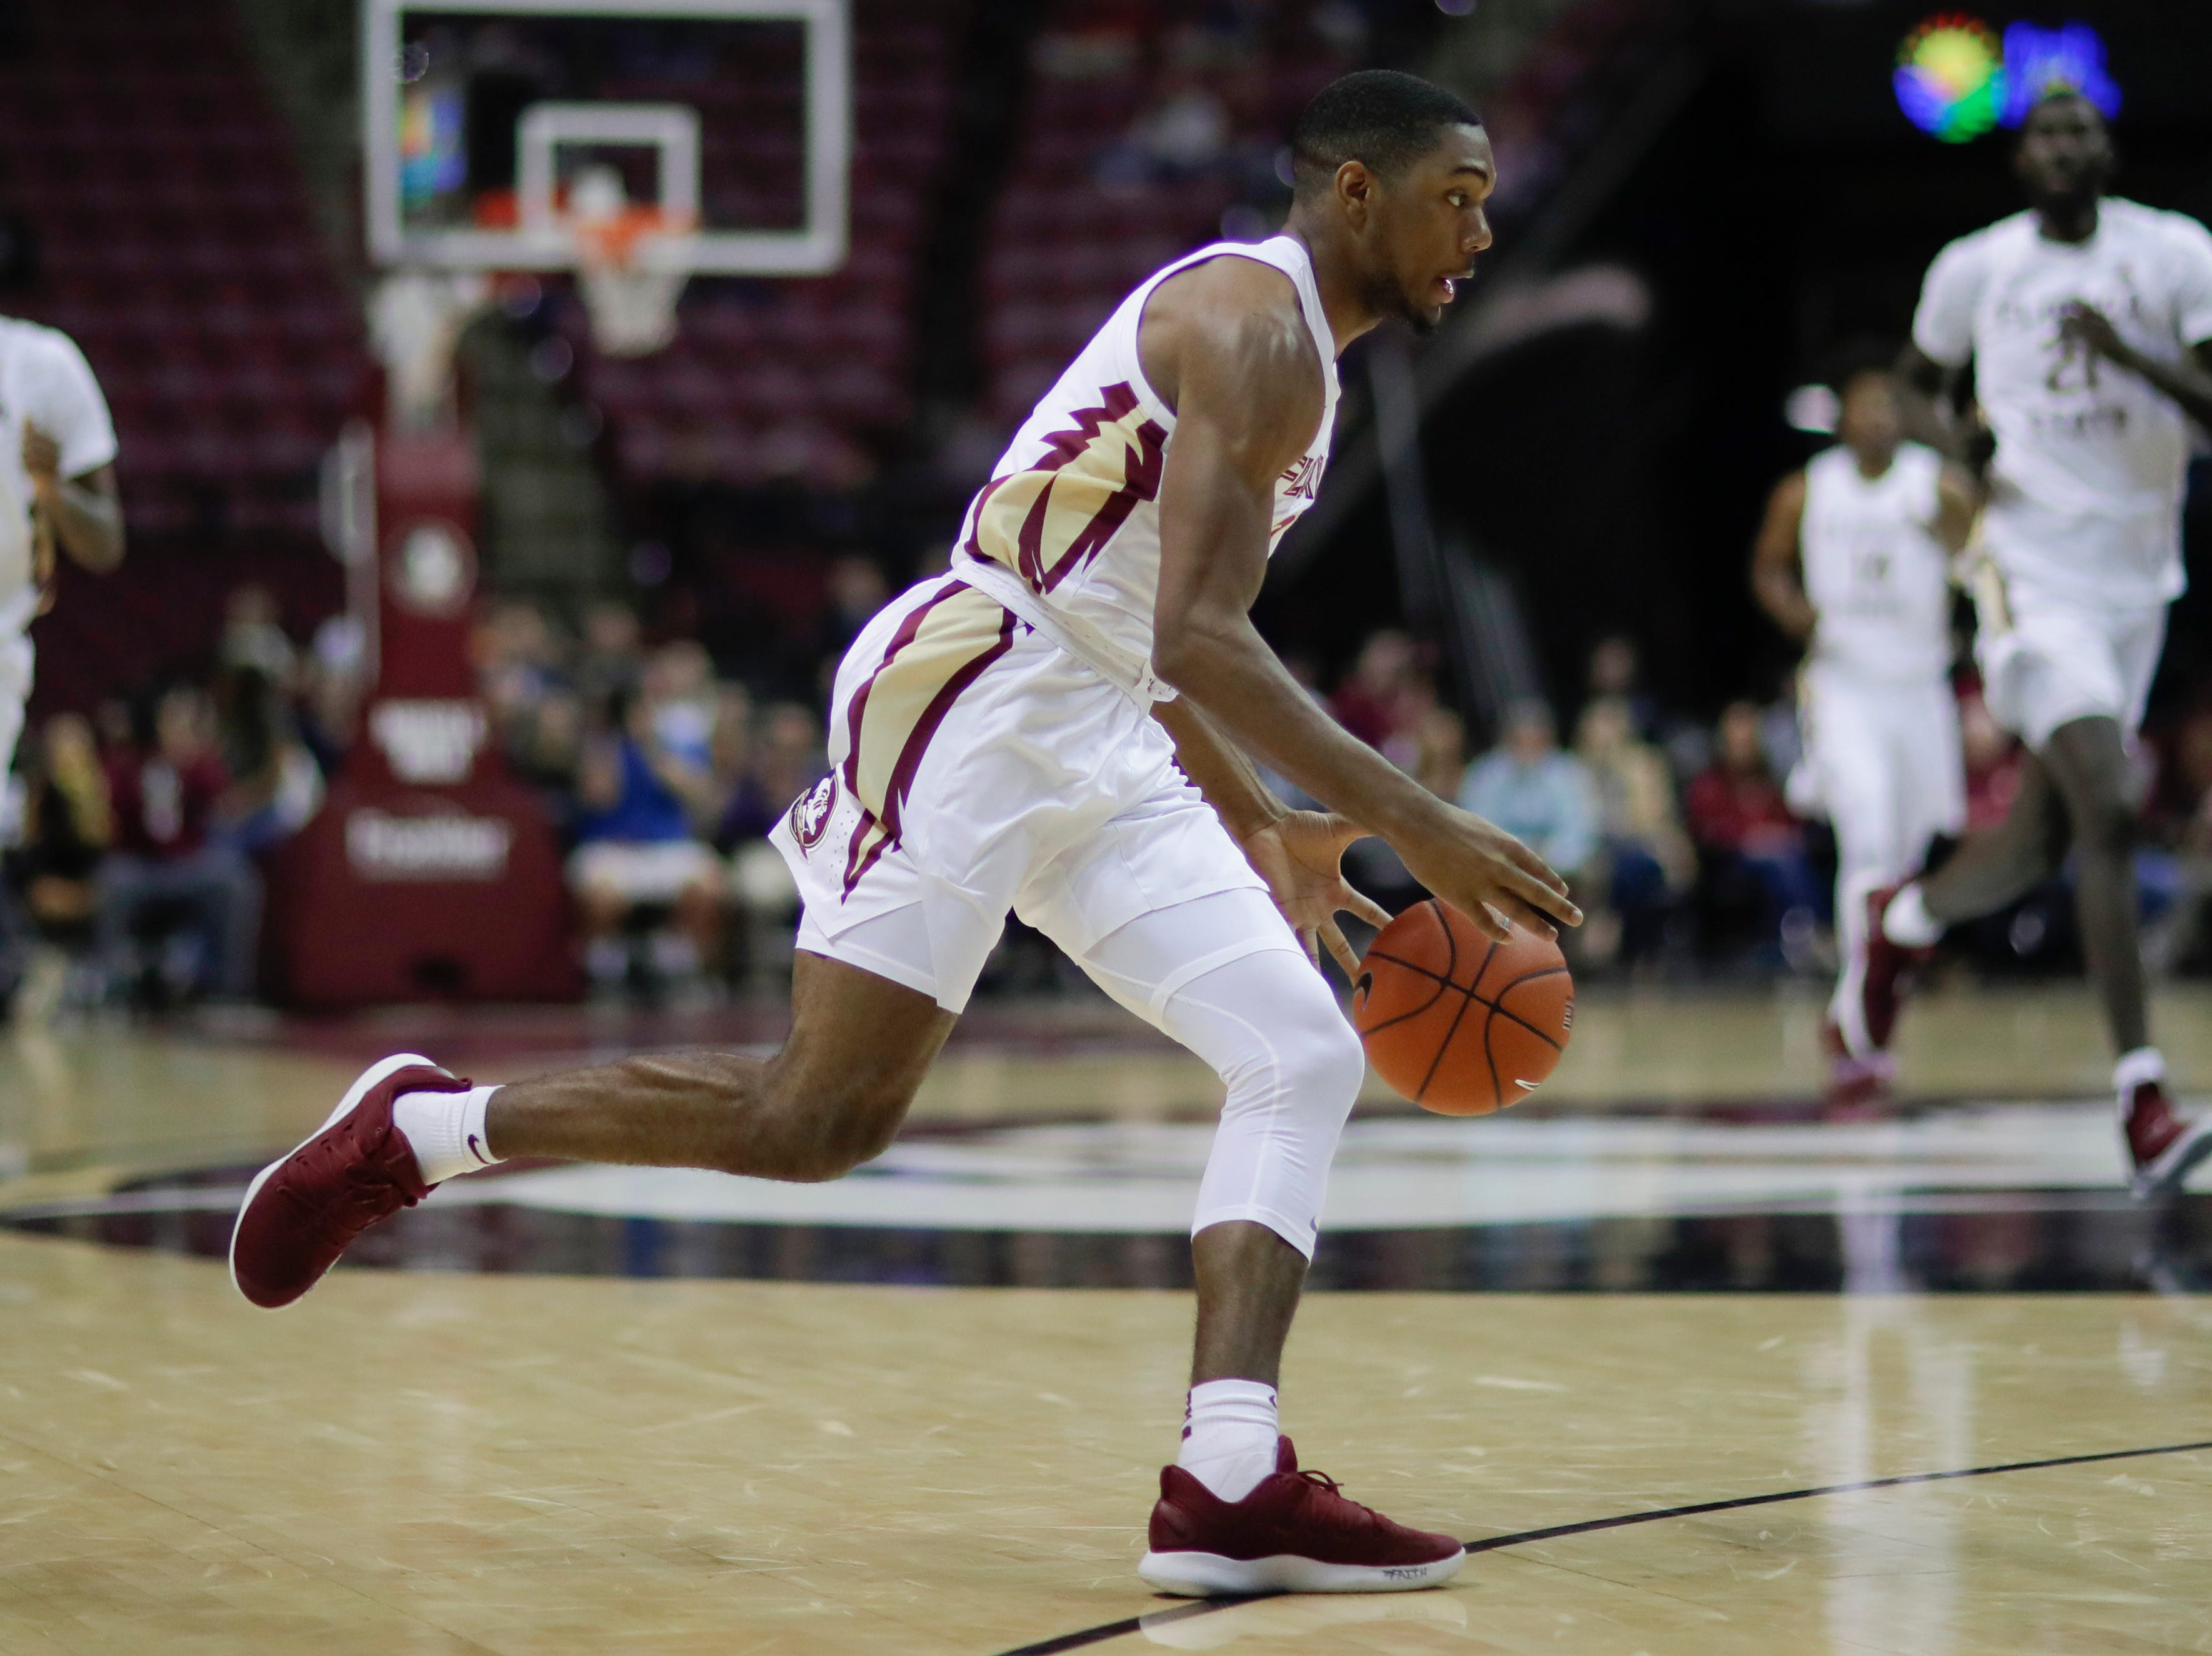 Florida State Seminoles guard Trent Forrest (3) drives to the lane during a game between FSU and Troy University at Donald L. Tucker Civic Center Monday, Dec. 3, 2018.